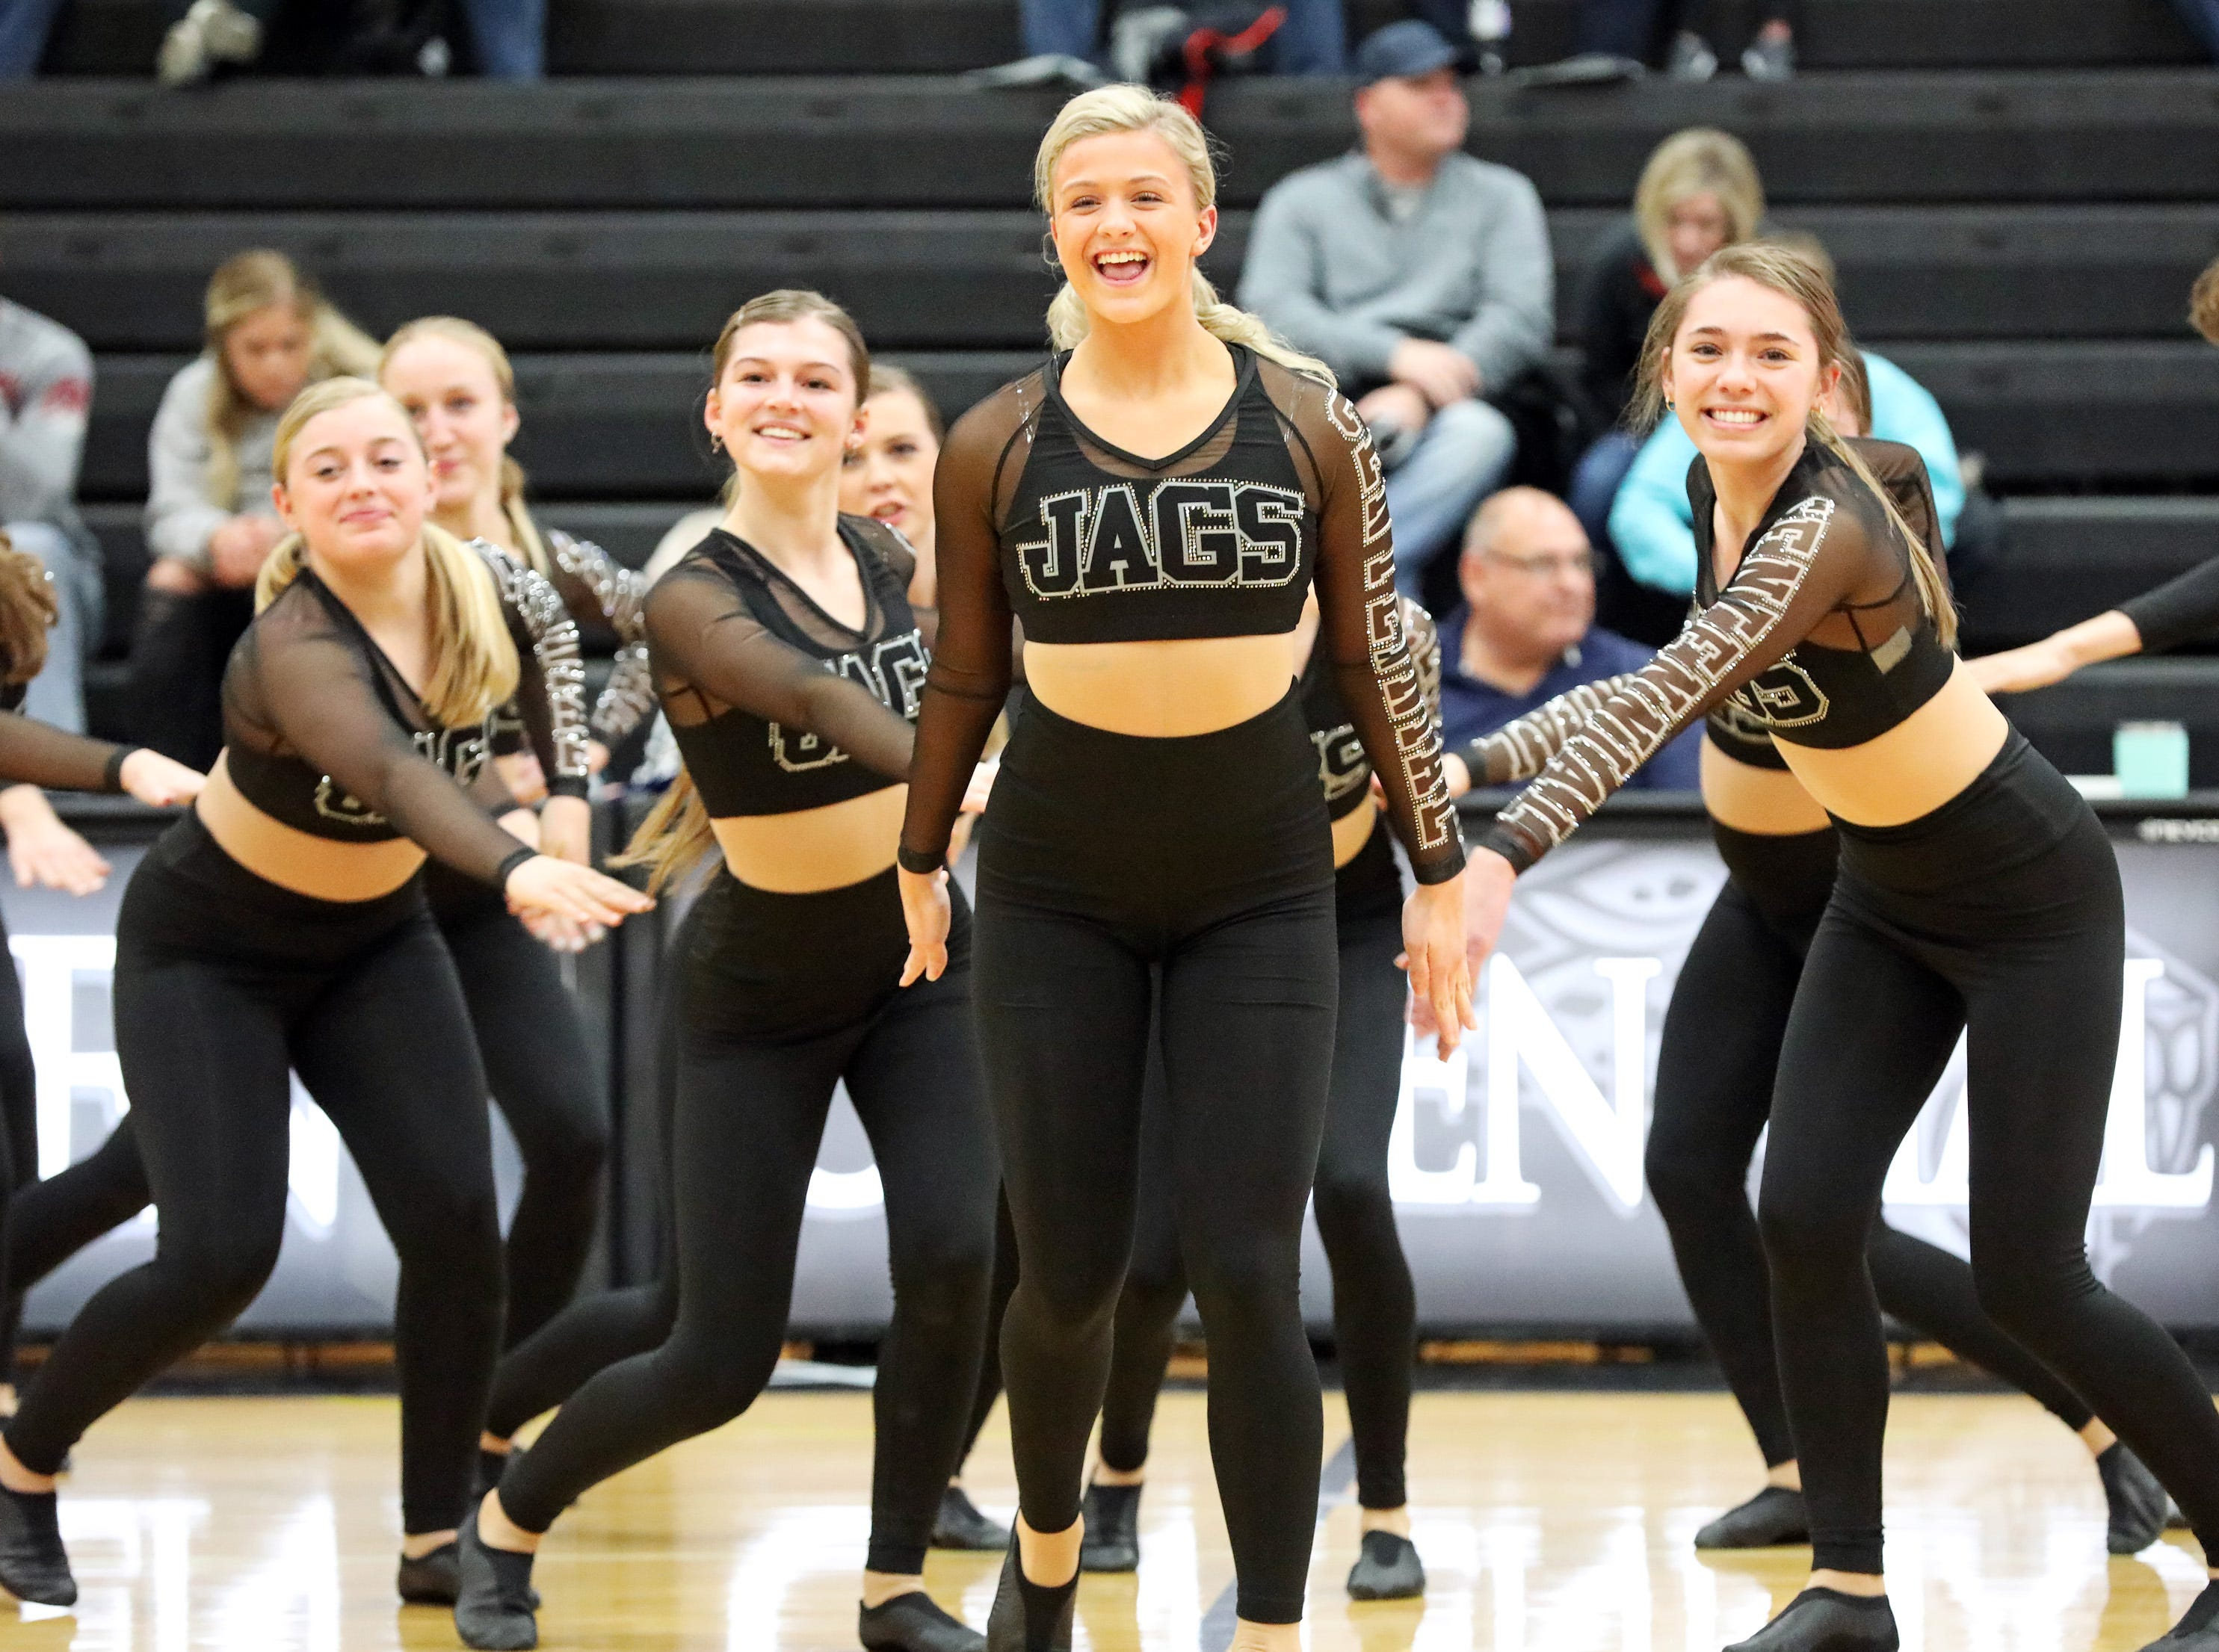 The half-time show featured the Ankeny Centennial Dance Team, which is the defending national champion in the Pom Division at the National Dance Alliance Championships held in Orlando, Florida.